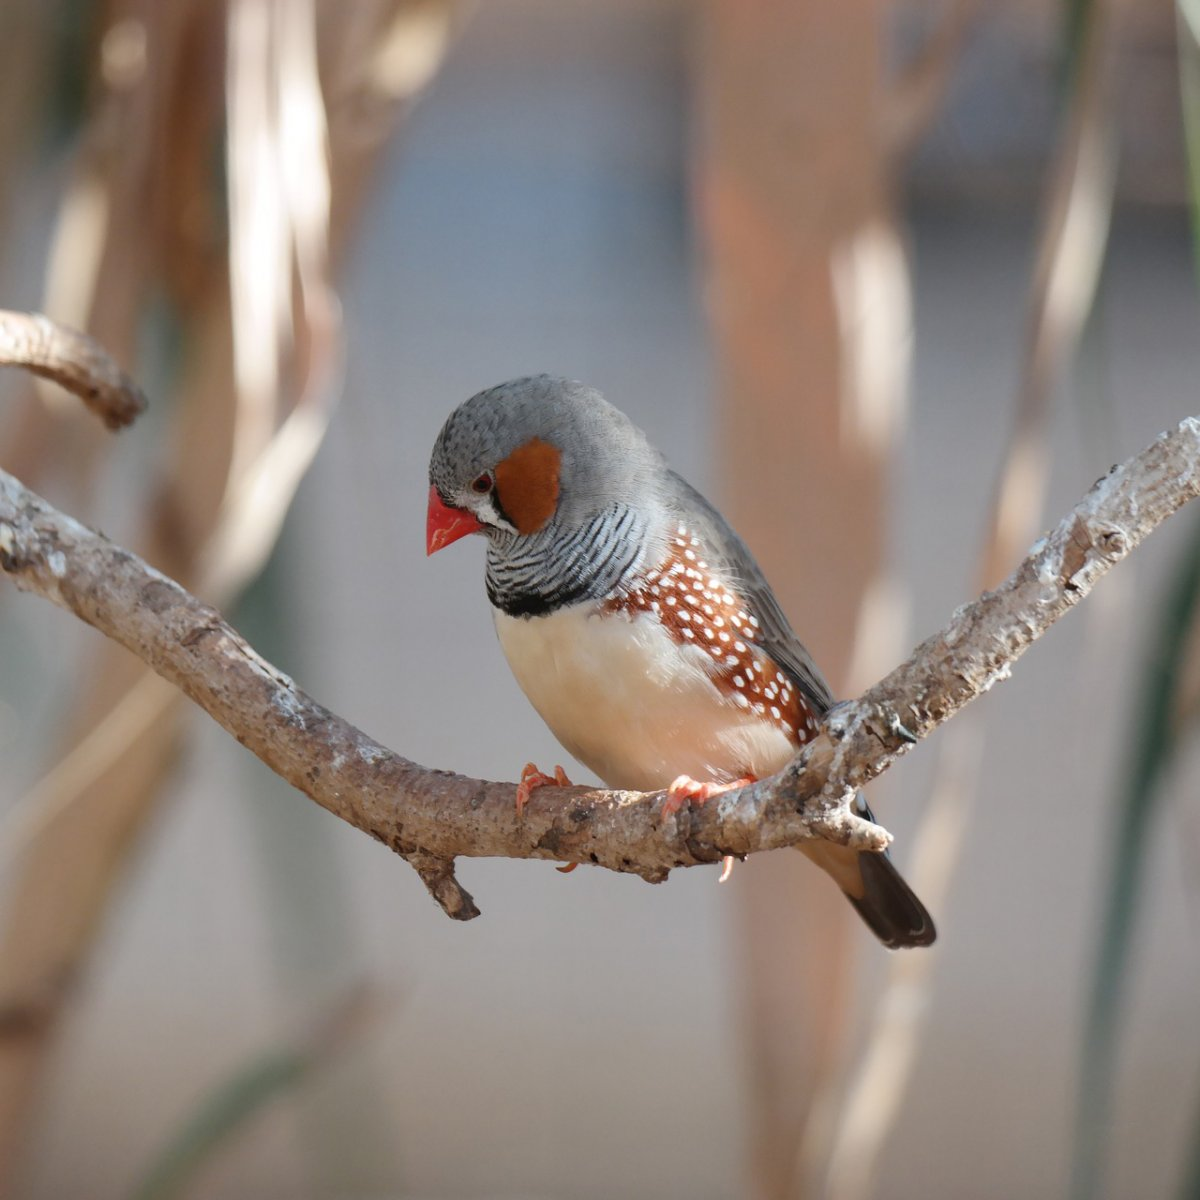 zebra finch sits on branch